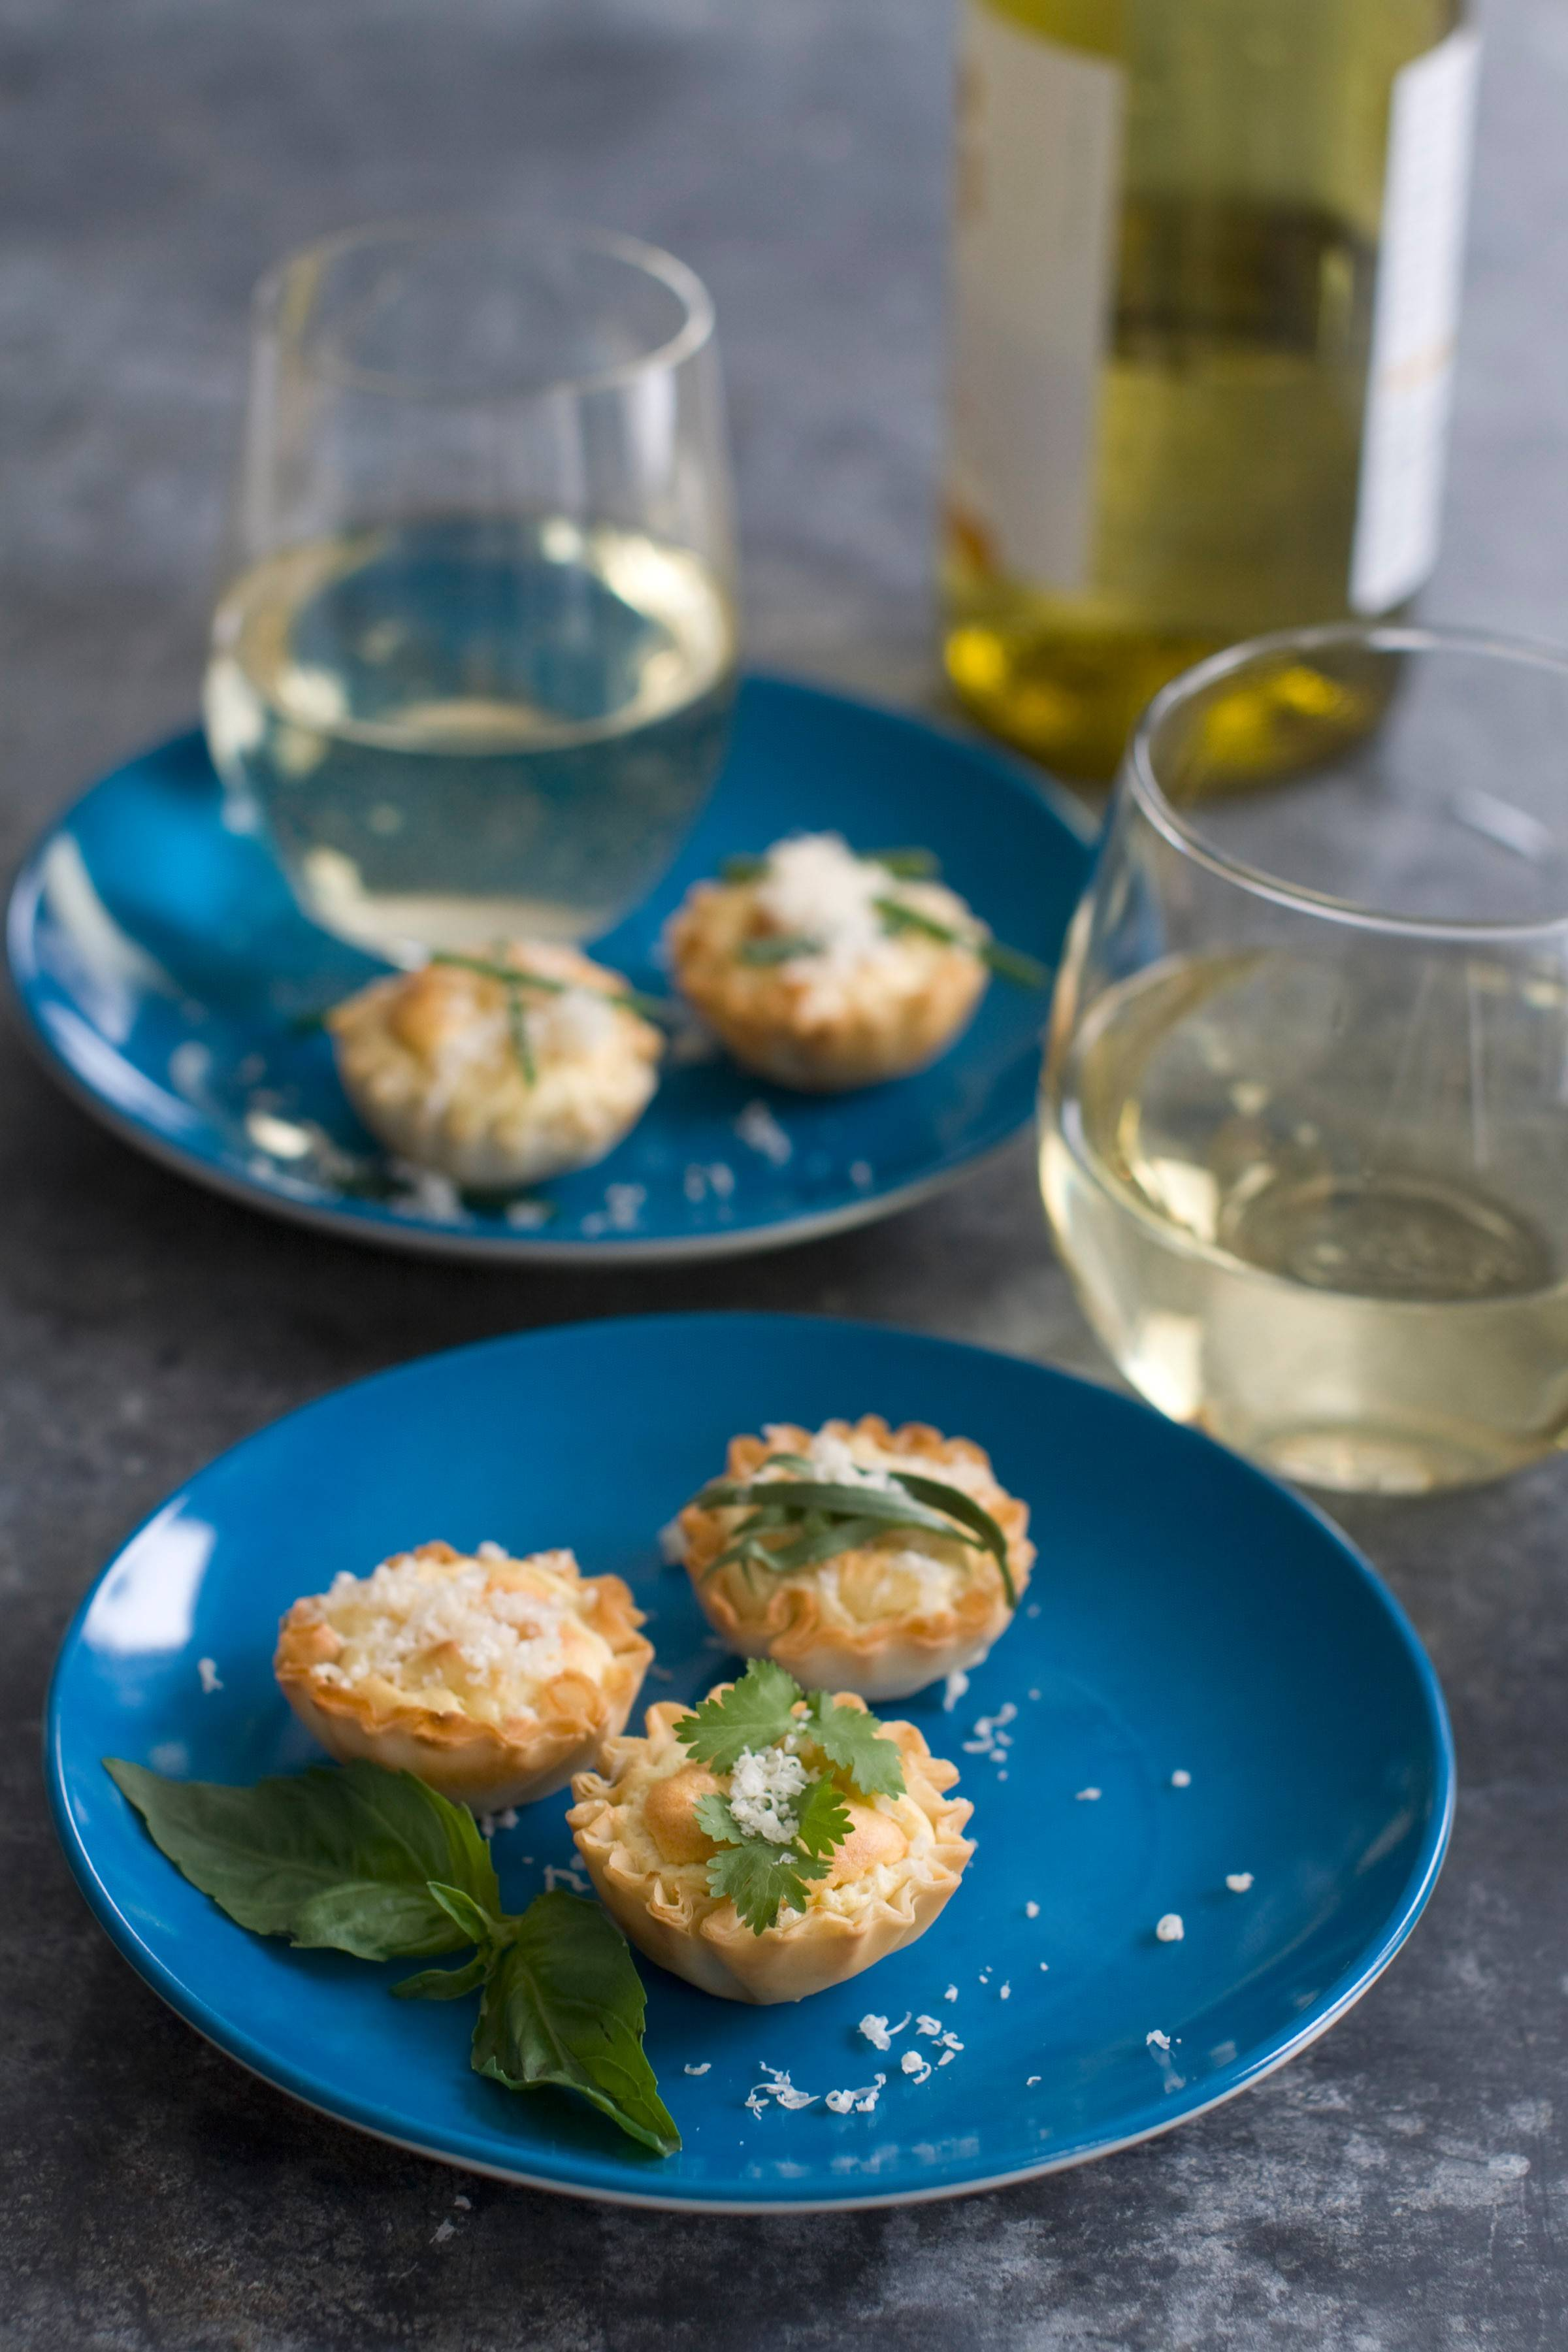 Each of these anti-gravity goat cheese phyllo bites is fairly low in calories -- no more than 15 calories per shell.